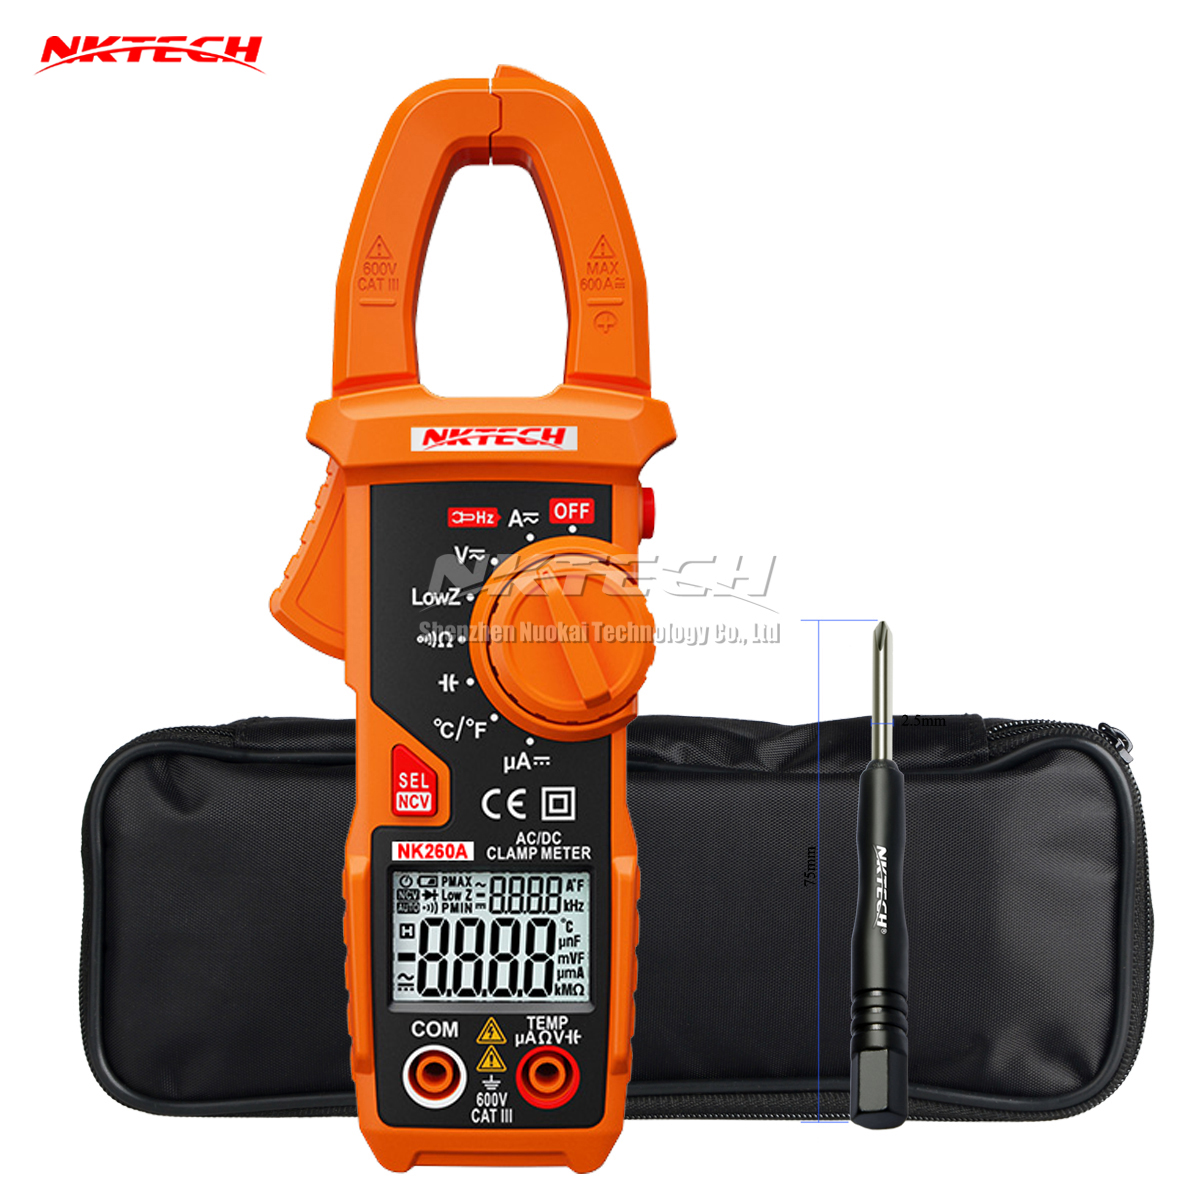 NKTECH NK260A Digital Clamp Meter Temperature AC DC Voltage Current Resistance Capacitance Frequency Auto Recognize V/Ohm/A Test nc dc dc dc adjustable voltage regulator module integrated voltage meter 8a voltage stabilized power supply